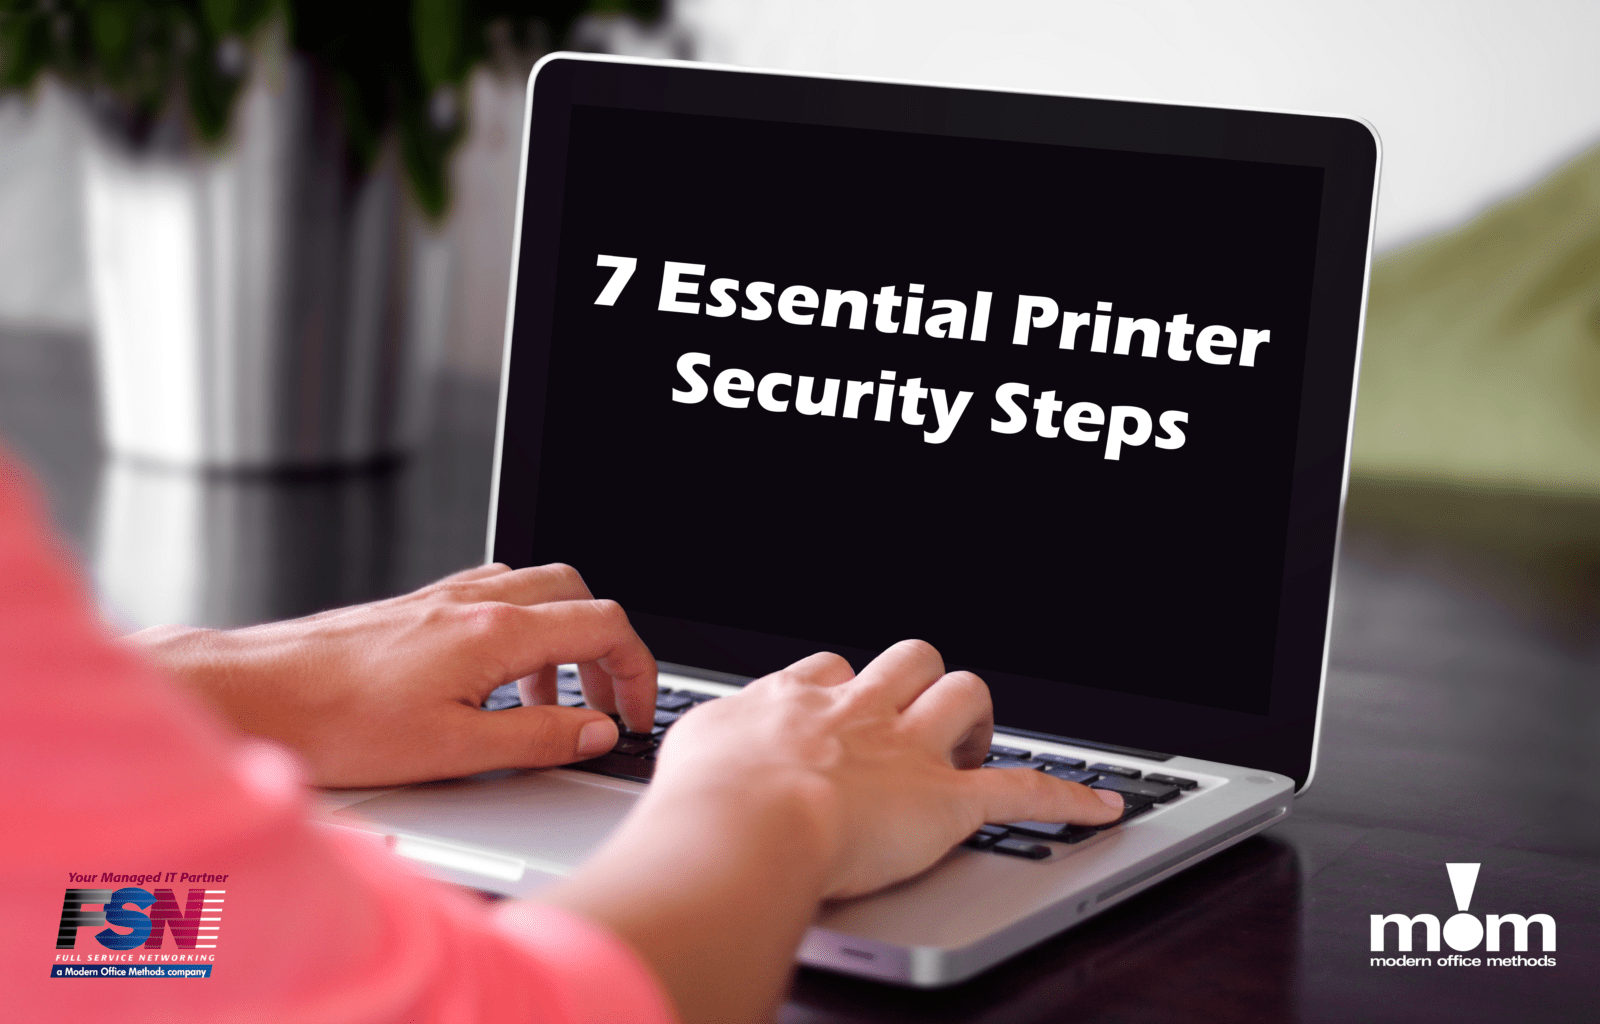 7 Essential Printer Security Steps